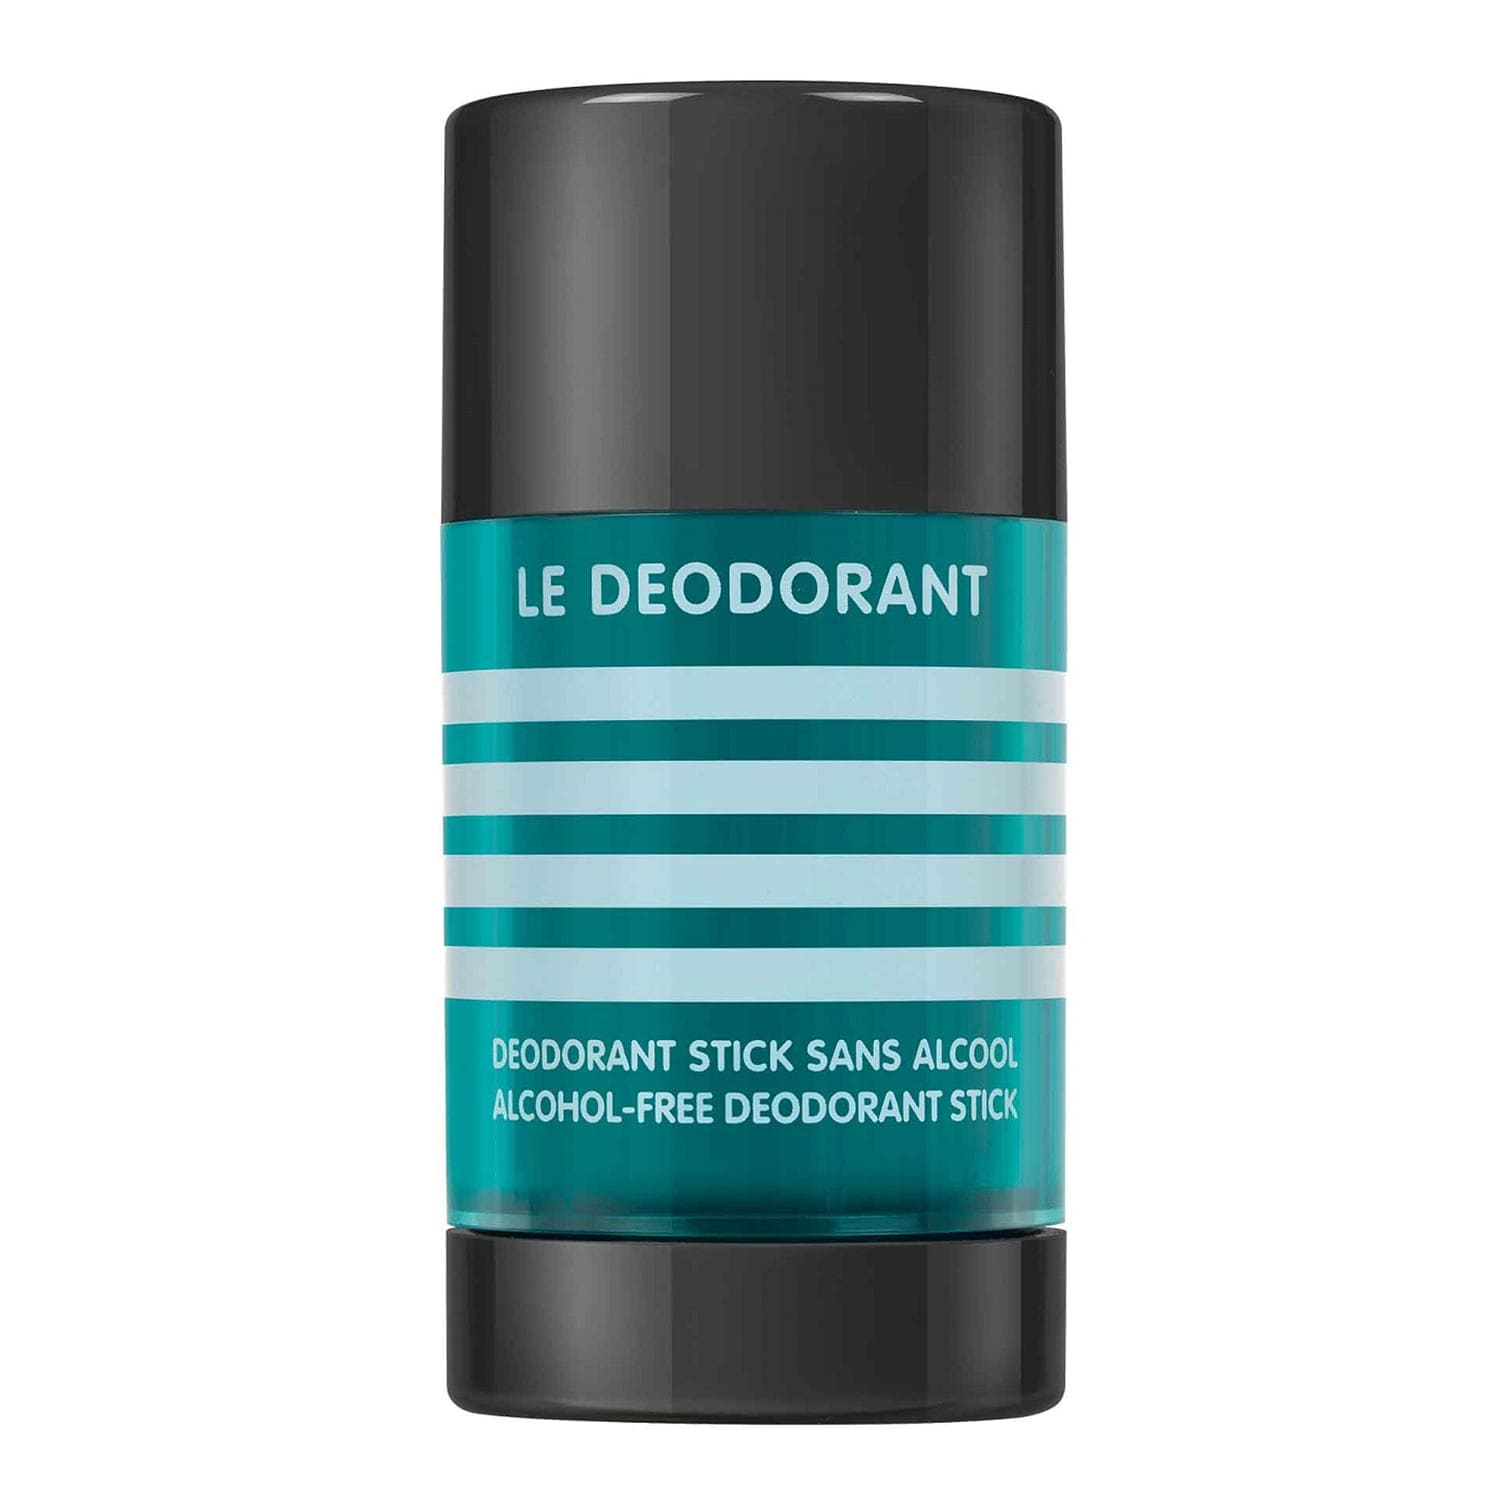 Homme Homme Déodorant ≡ Homme ≡ Sephora ≡ Déodorant Sephora Déodorant Homme Sephora ≡ Déodorant jL35qcAR4